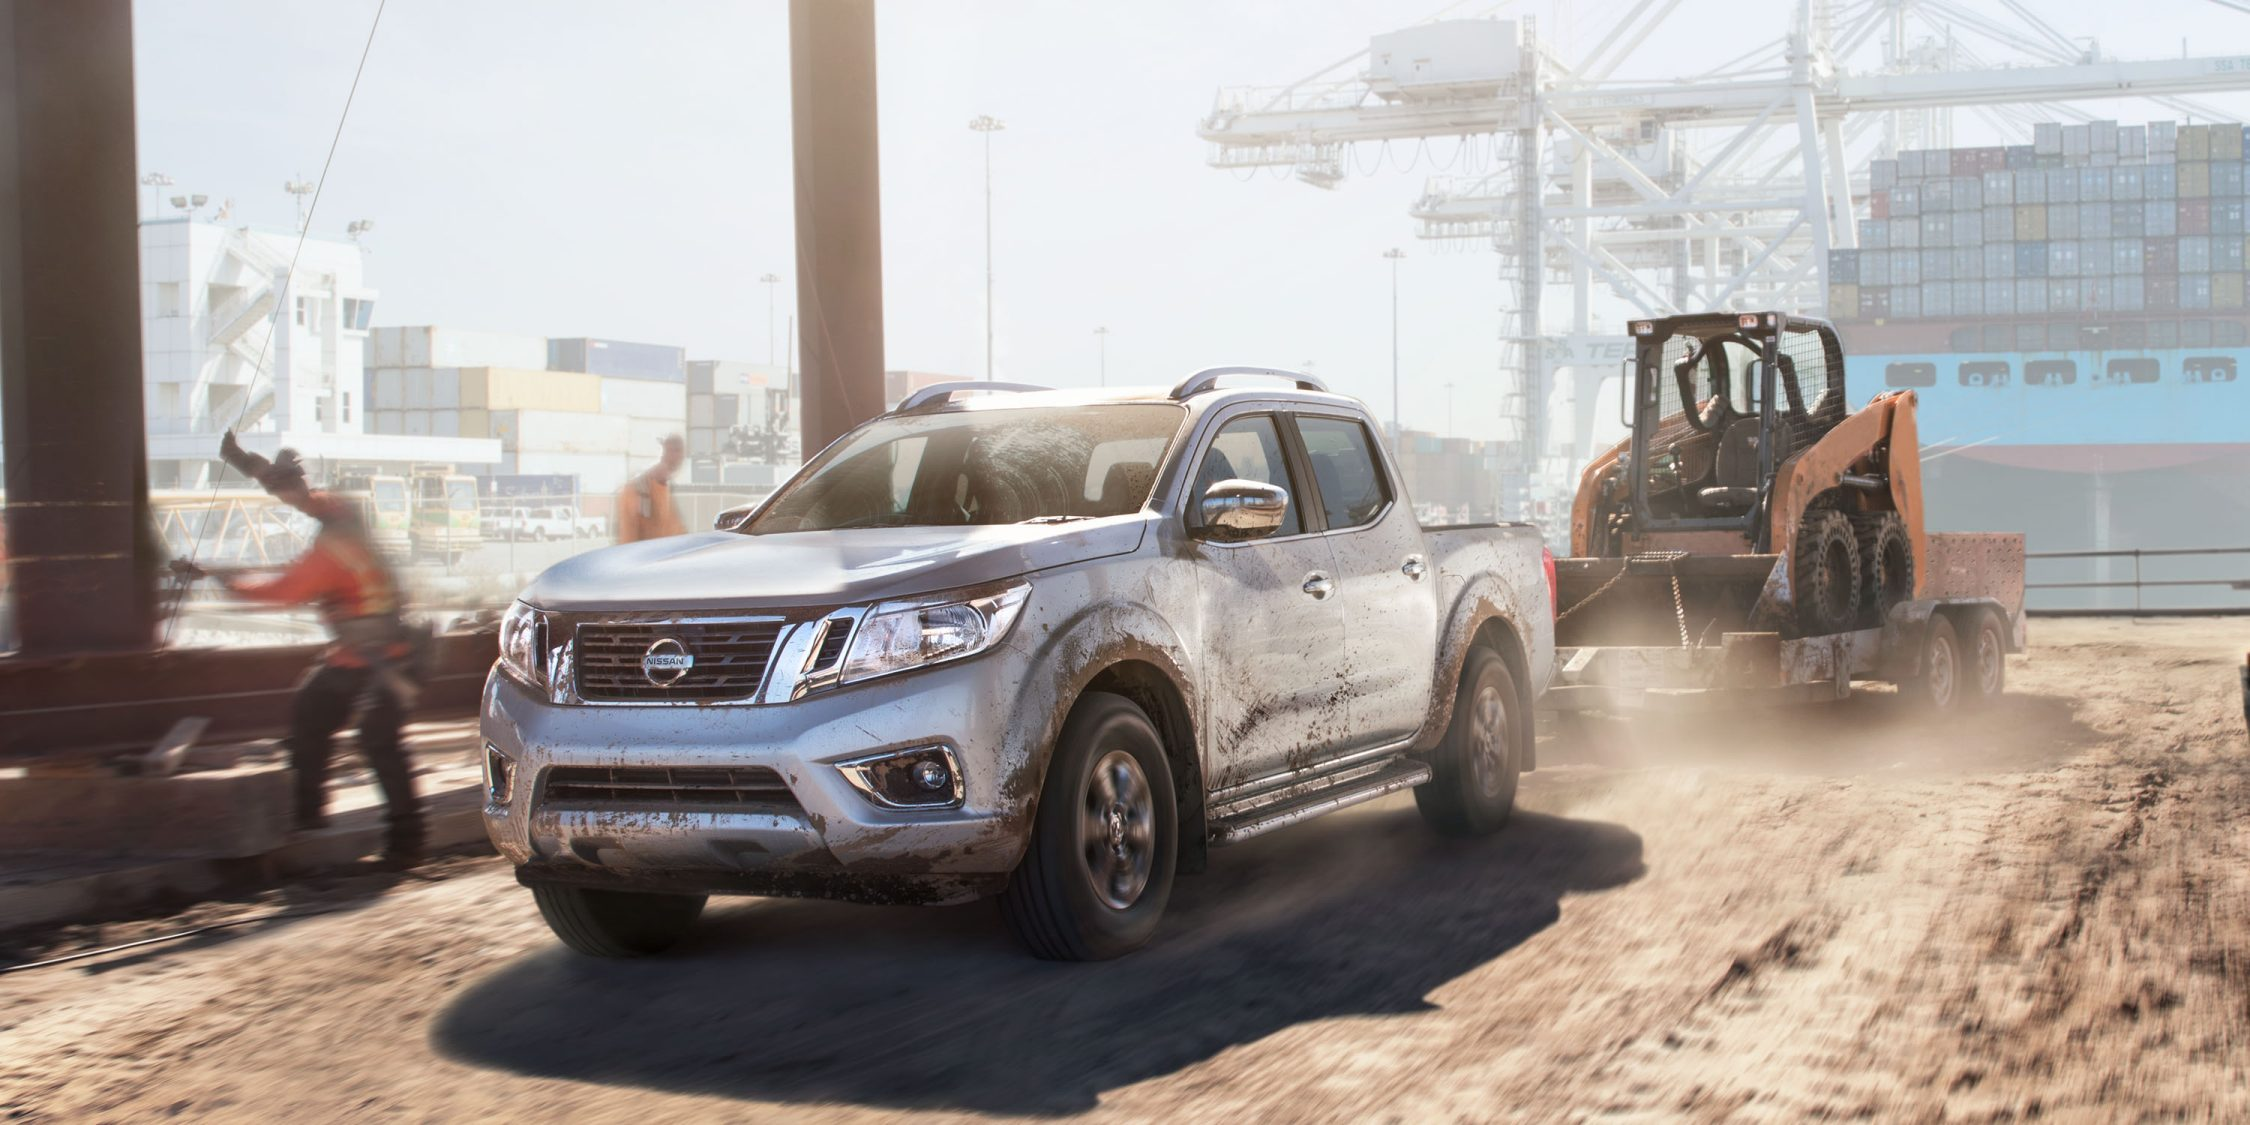 Nissan Navara hauling large equipment in port setting